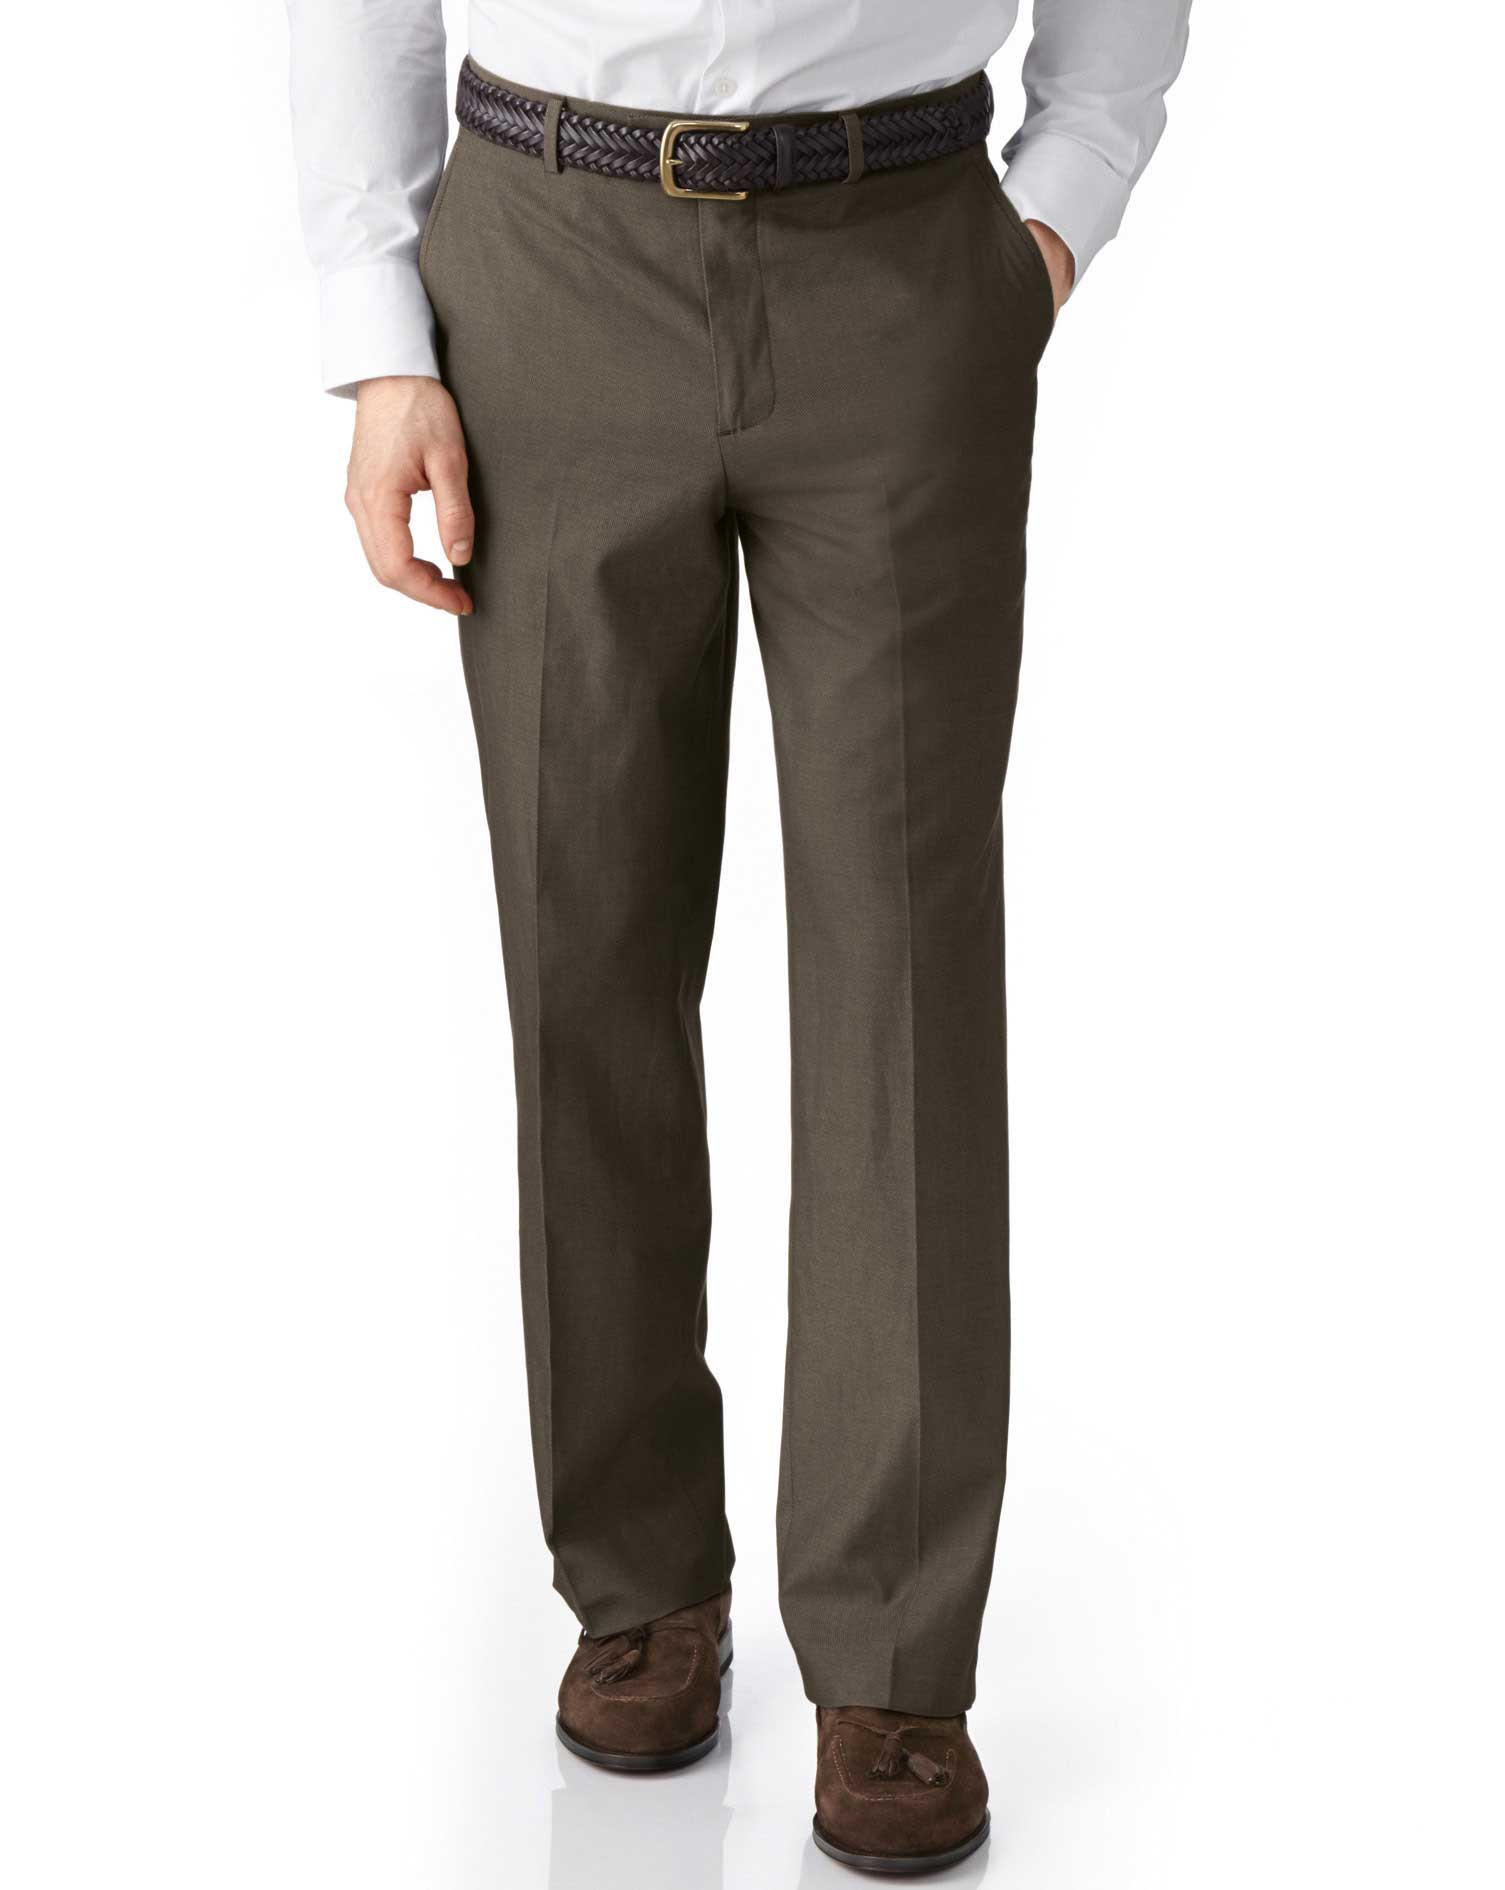 Brown Classic Fit Stretch Cavalry Twill Cotton Chino Trousers Size W36 L32 by Charles Tyrwhitt